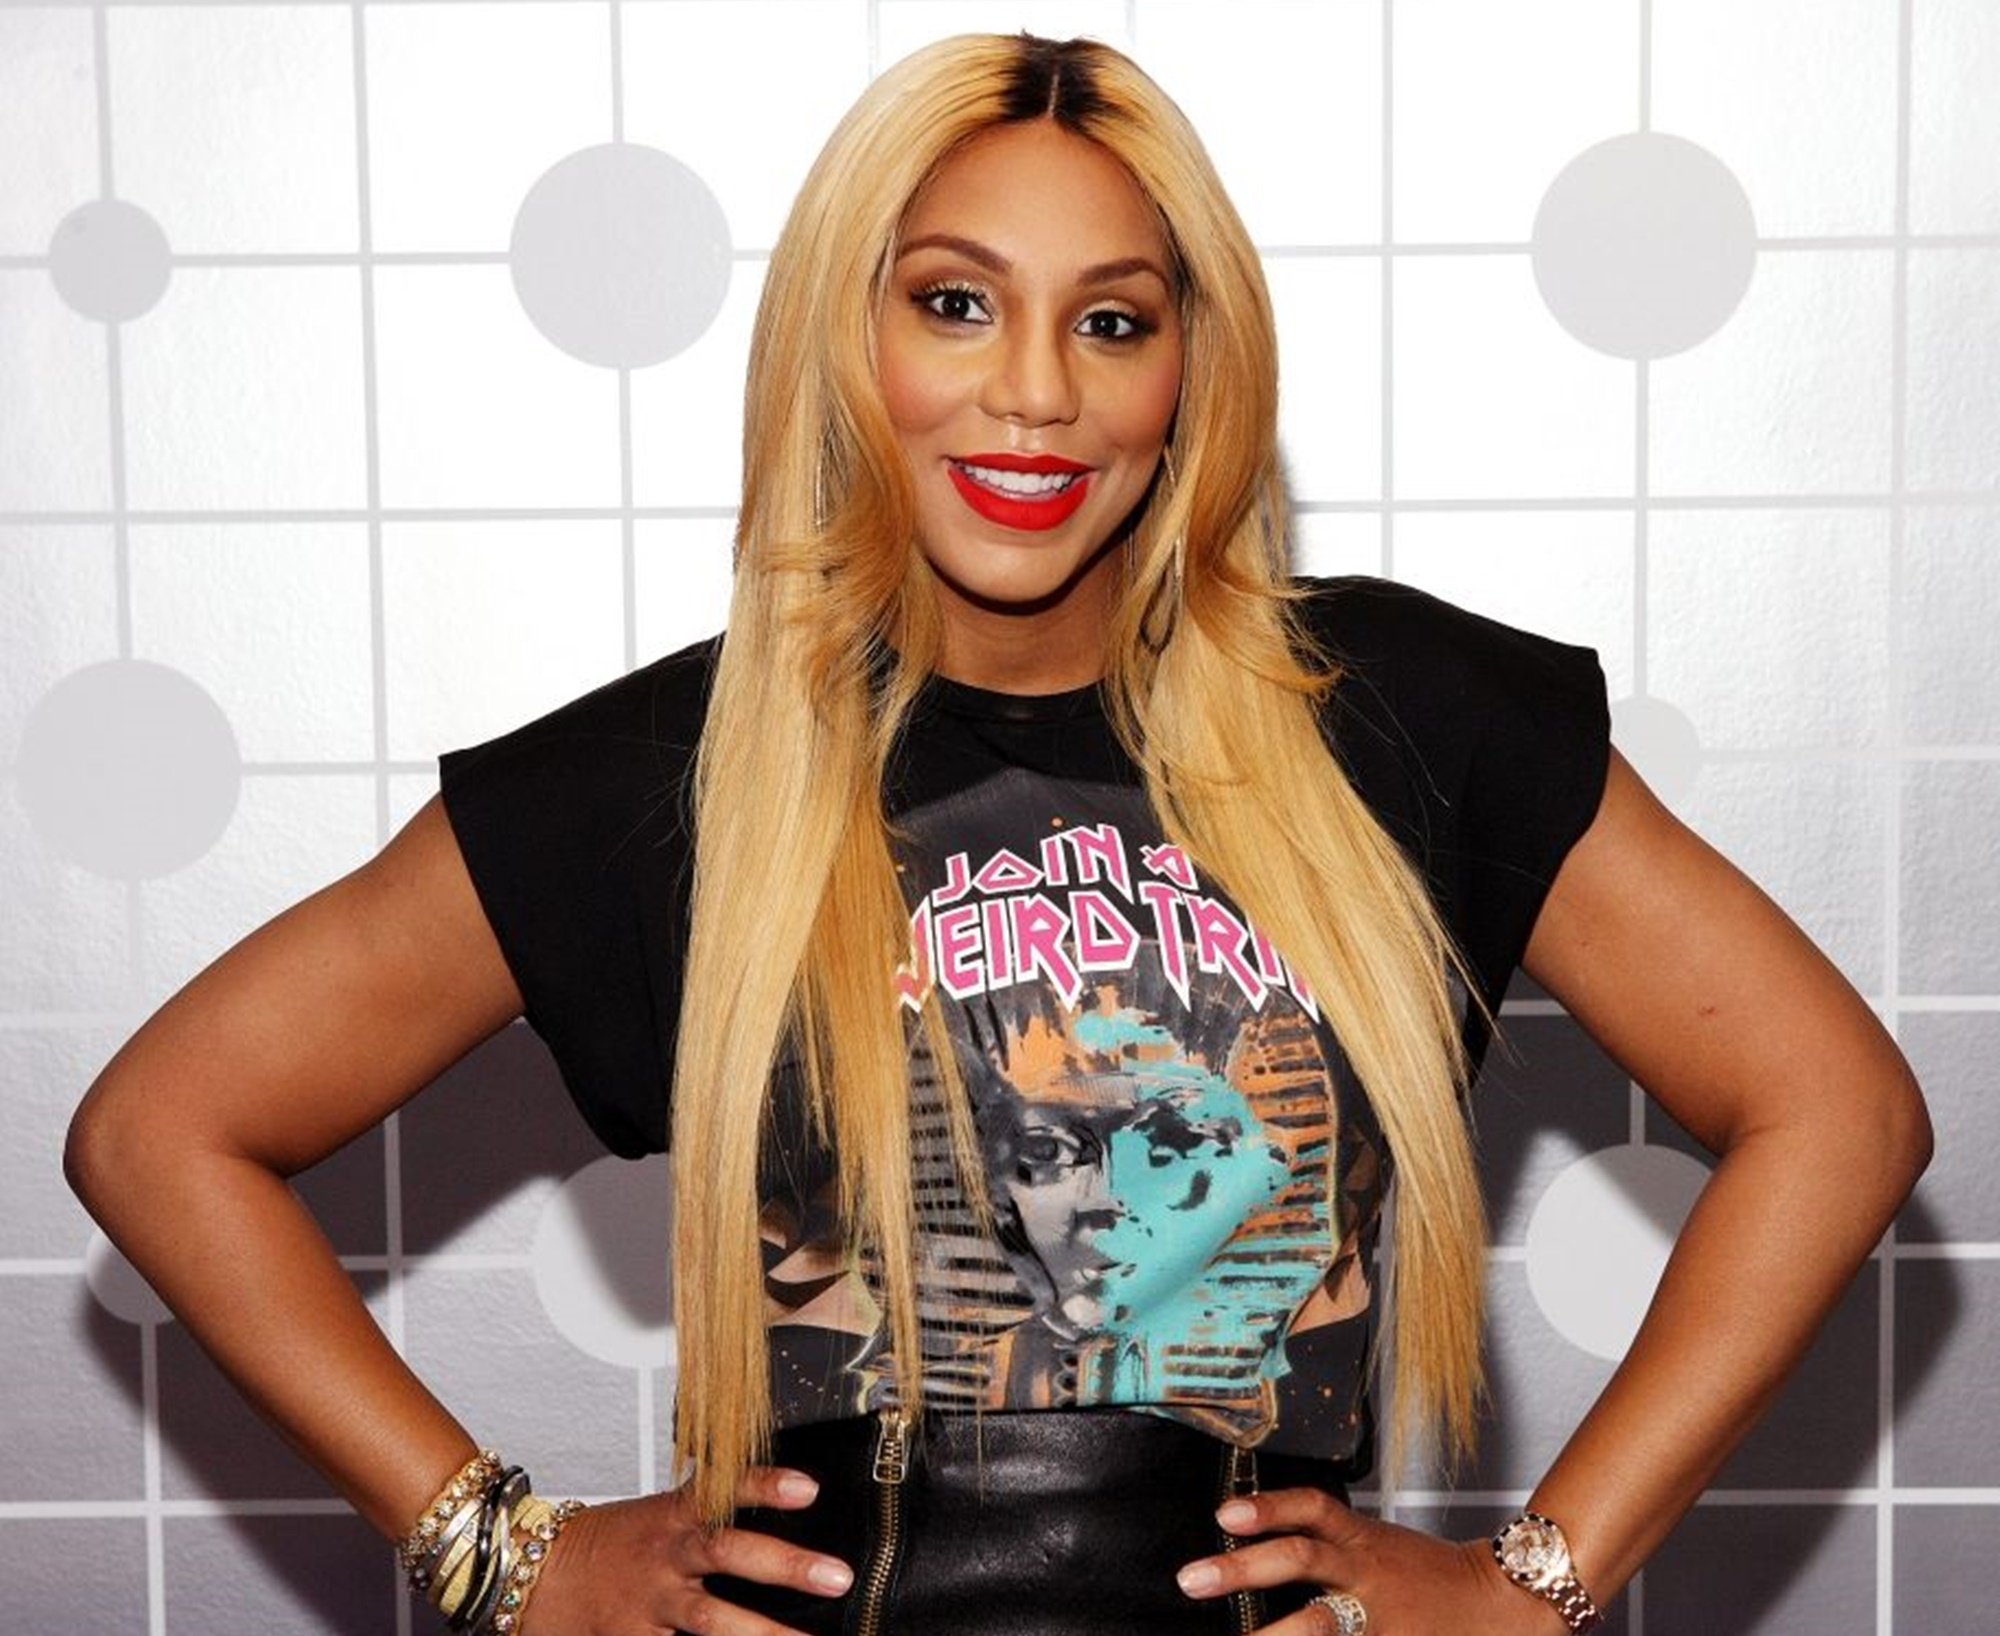 Tamar Braxton's Fans Support Her After She Slams WeTV For Trying To 'Make A Coin' Using Her Pain And Suffering